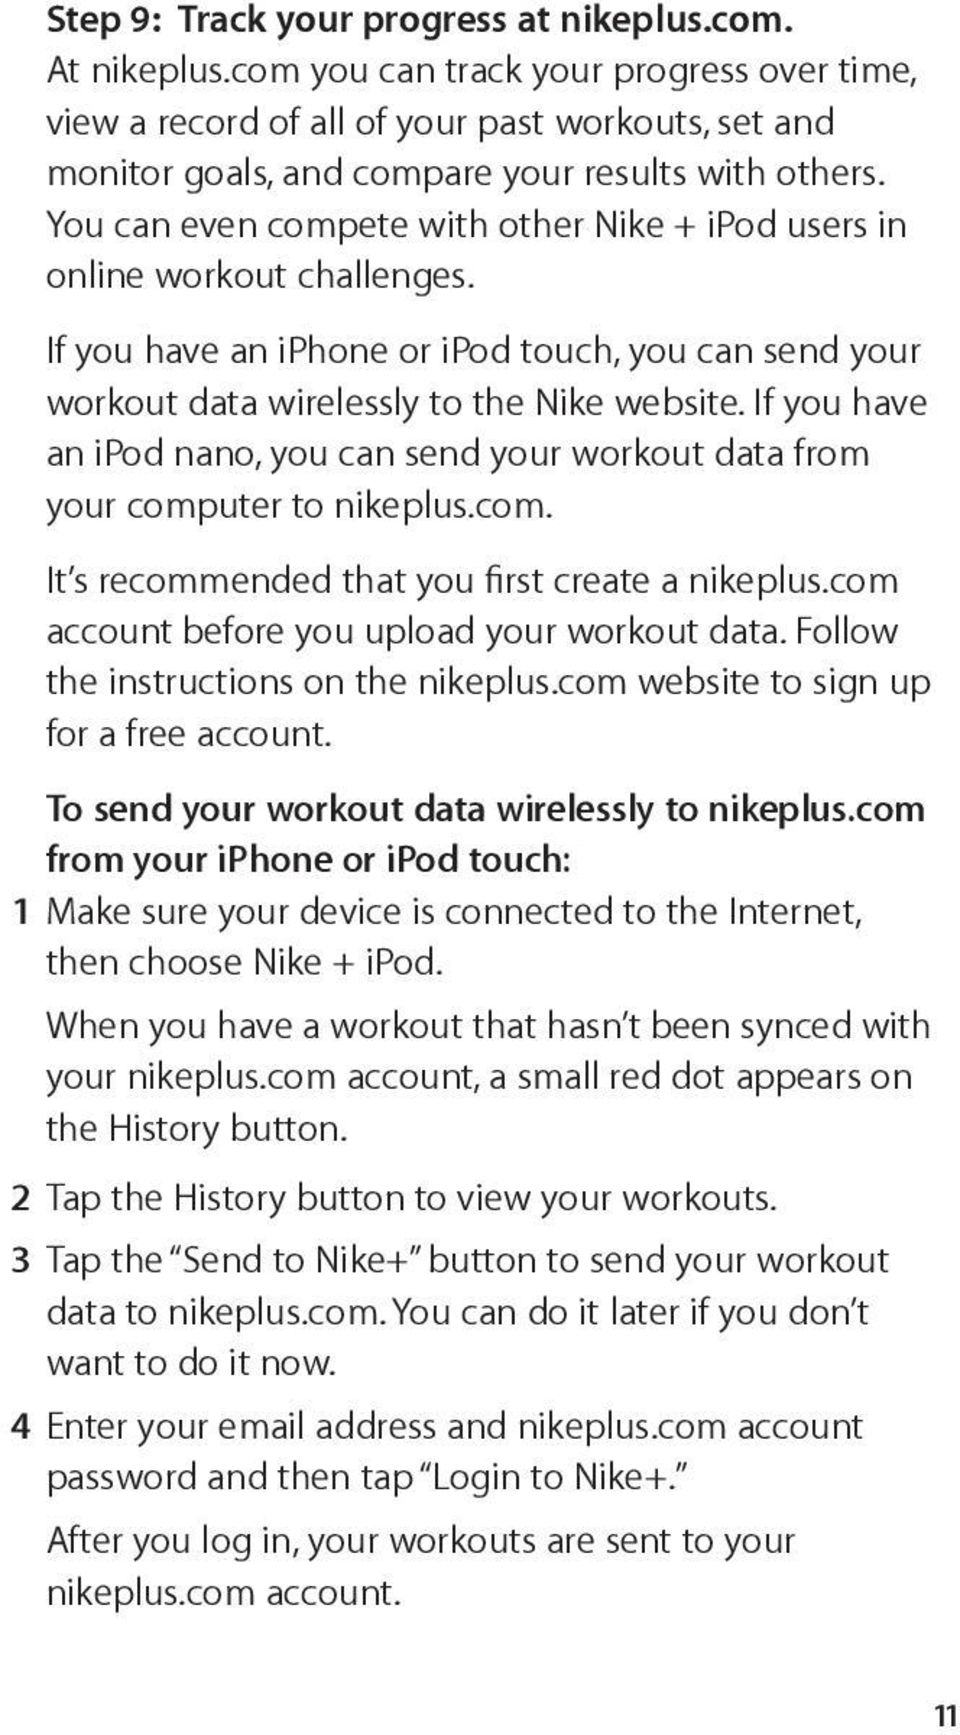 You can even compete with other Nike + ipod users in online workout challenges. If you have an iphone or ipod touch, you can send your workout data wirelessly to the Nike website.